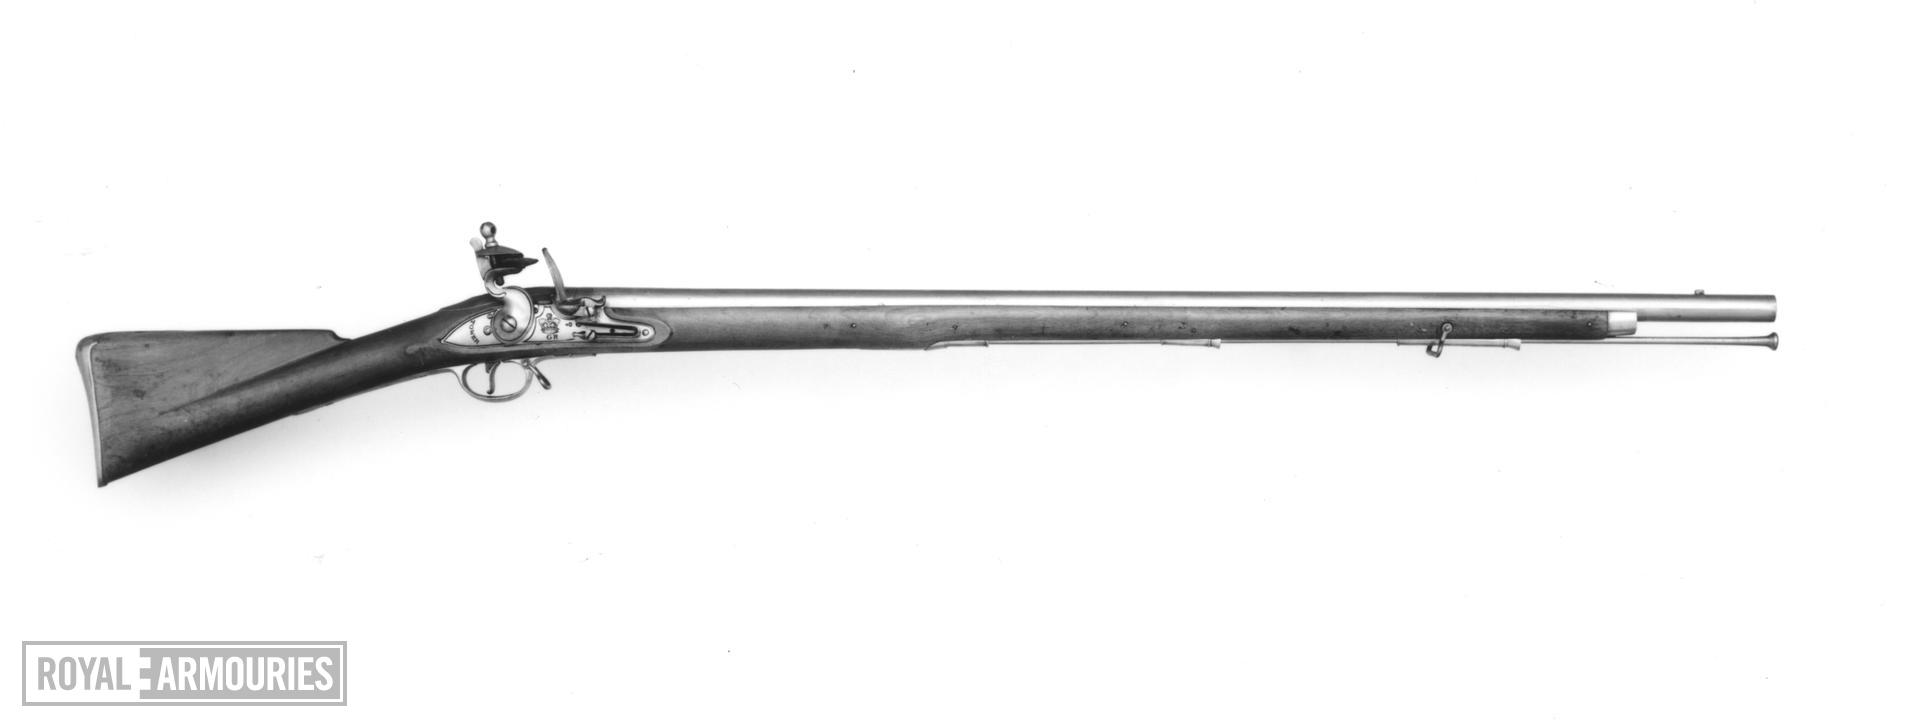 Flintlock muzzle-loading military musket - Model 1793 India Pattern (Type I)